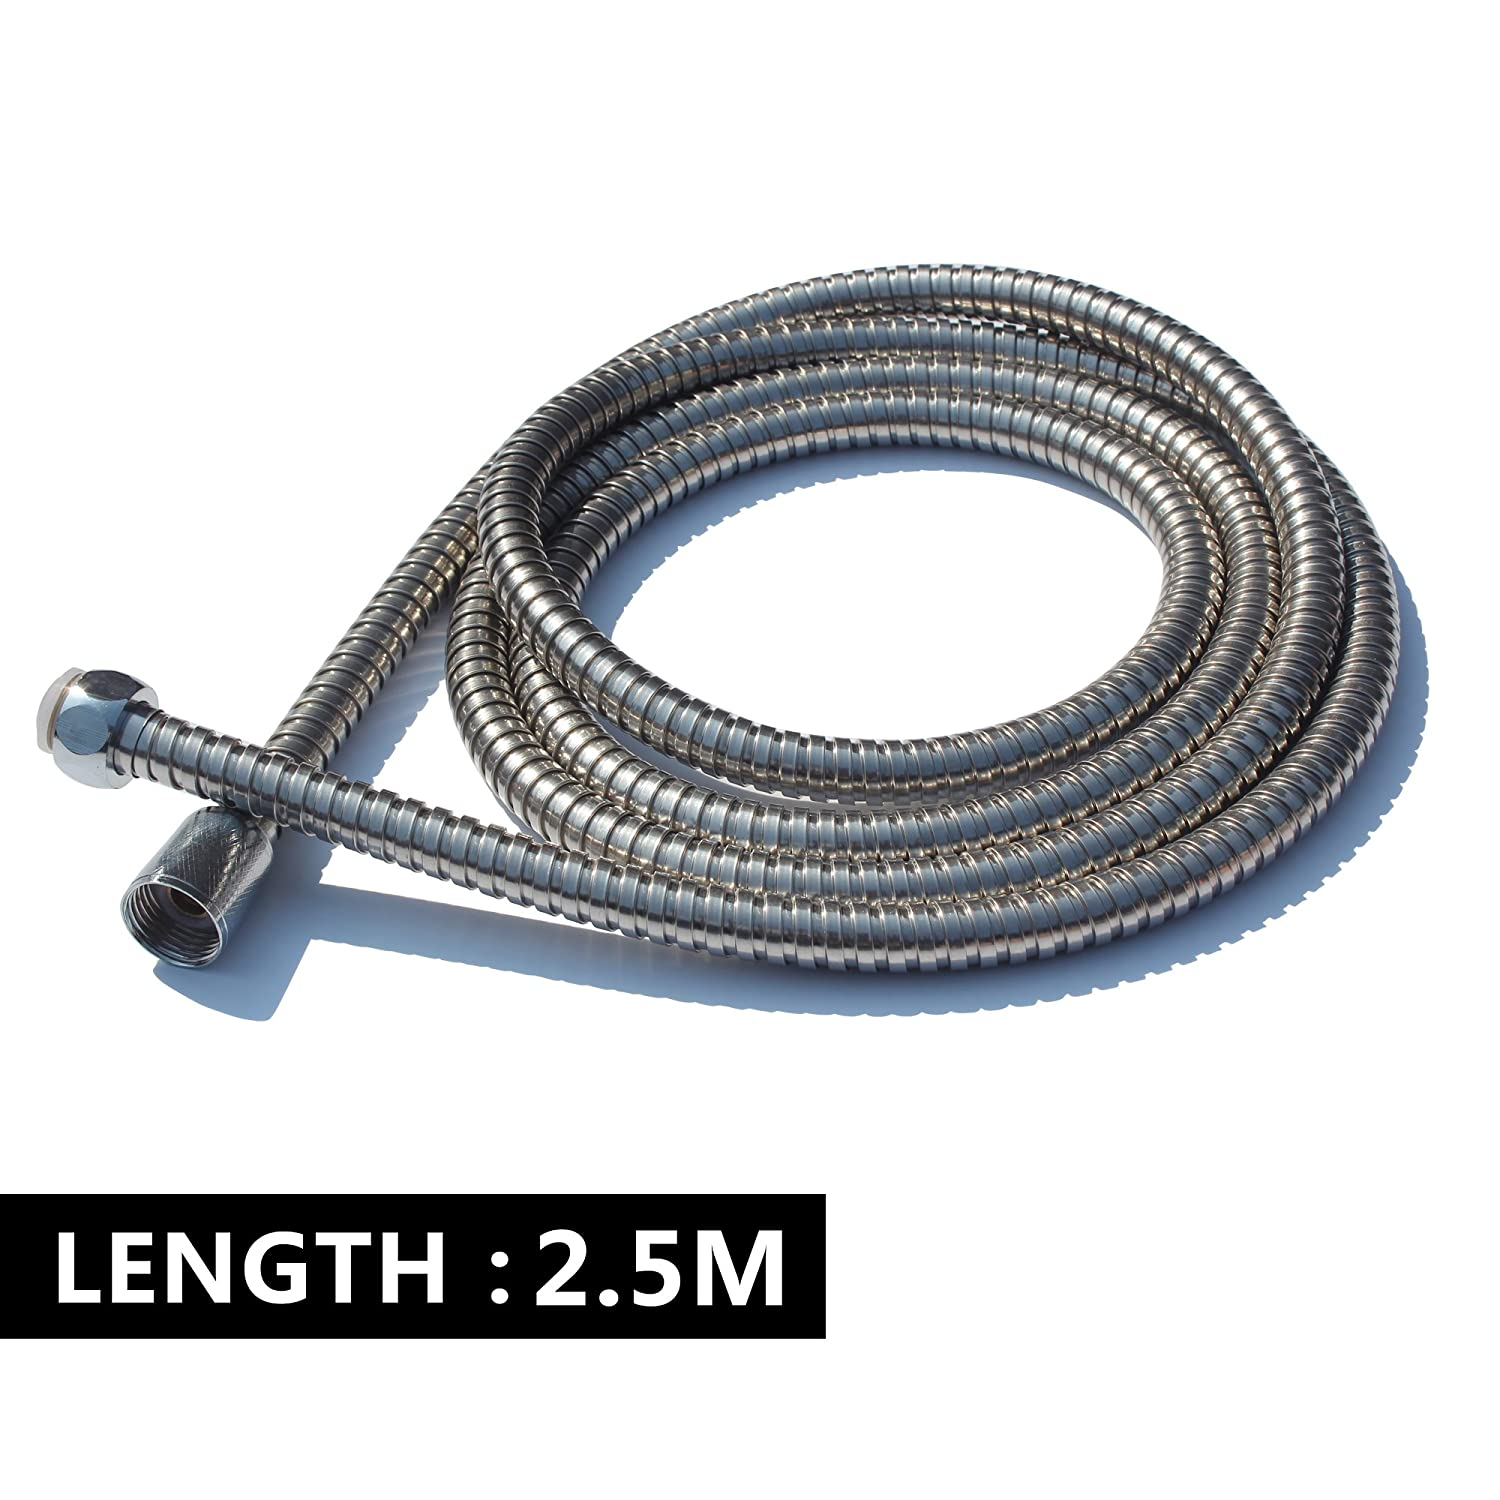 Anti-Explosion Leakproof Flexible Stainless Steel 2.5-Meter Extra Long Shower Hose Flexible Anti-kink Stainless Steel Replacement Shower Pipe Chrome LLRY